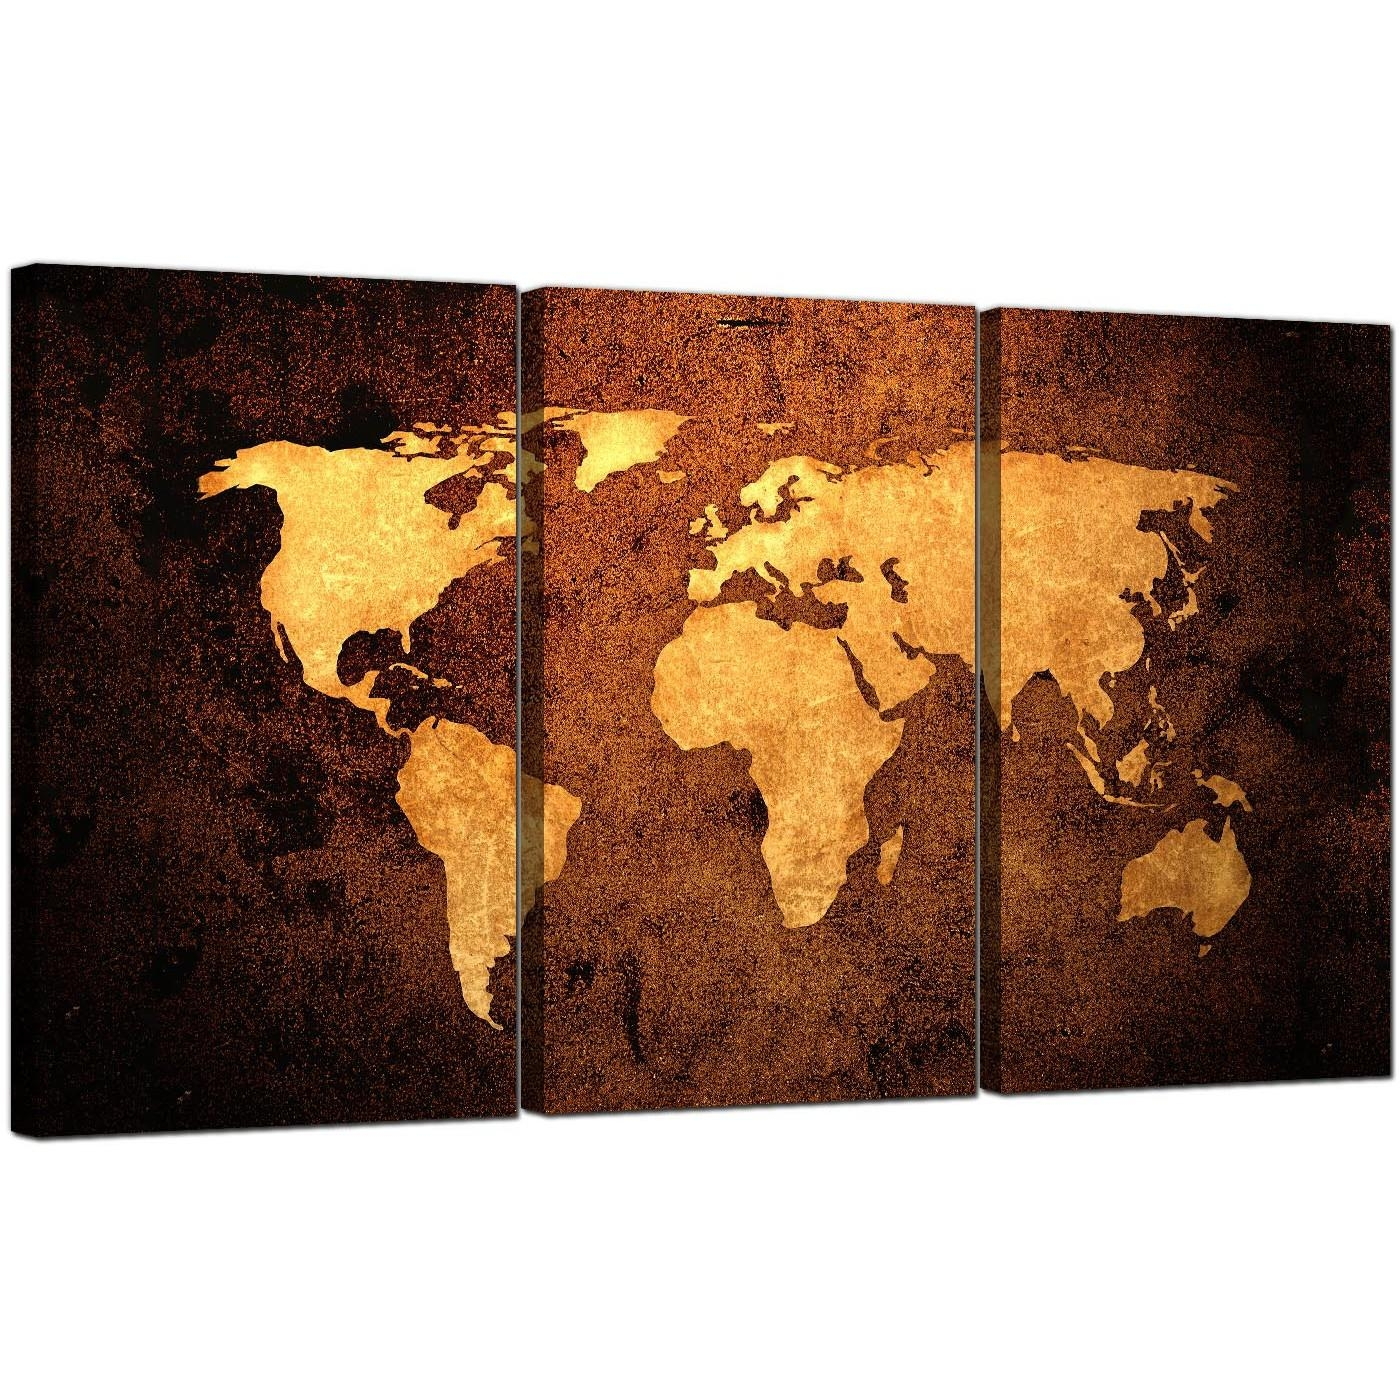 Vintage World Map Canvas Wall Art Set Of 3 For Your Bedroom For Three Panel Wall Art (Image 16 of 20)